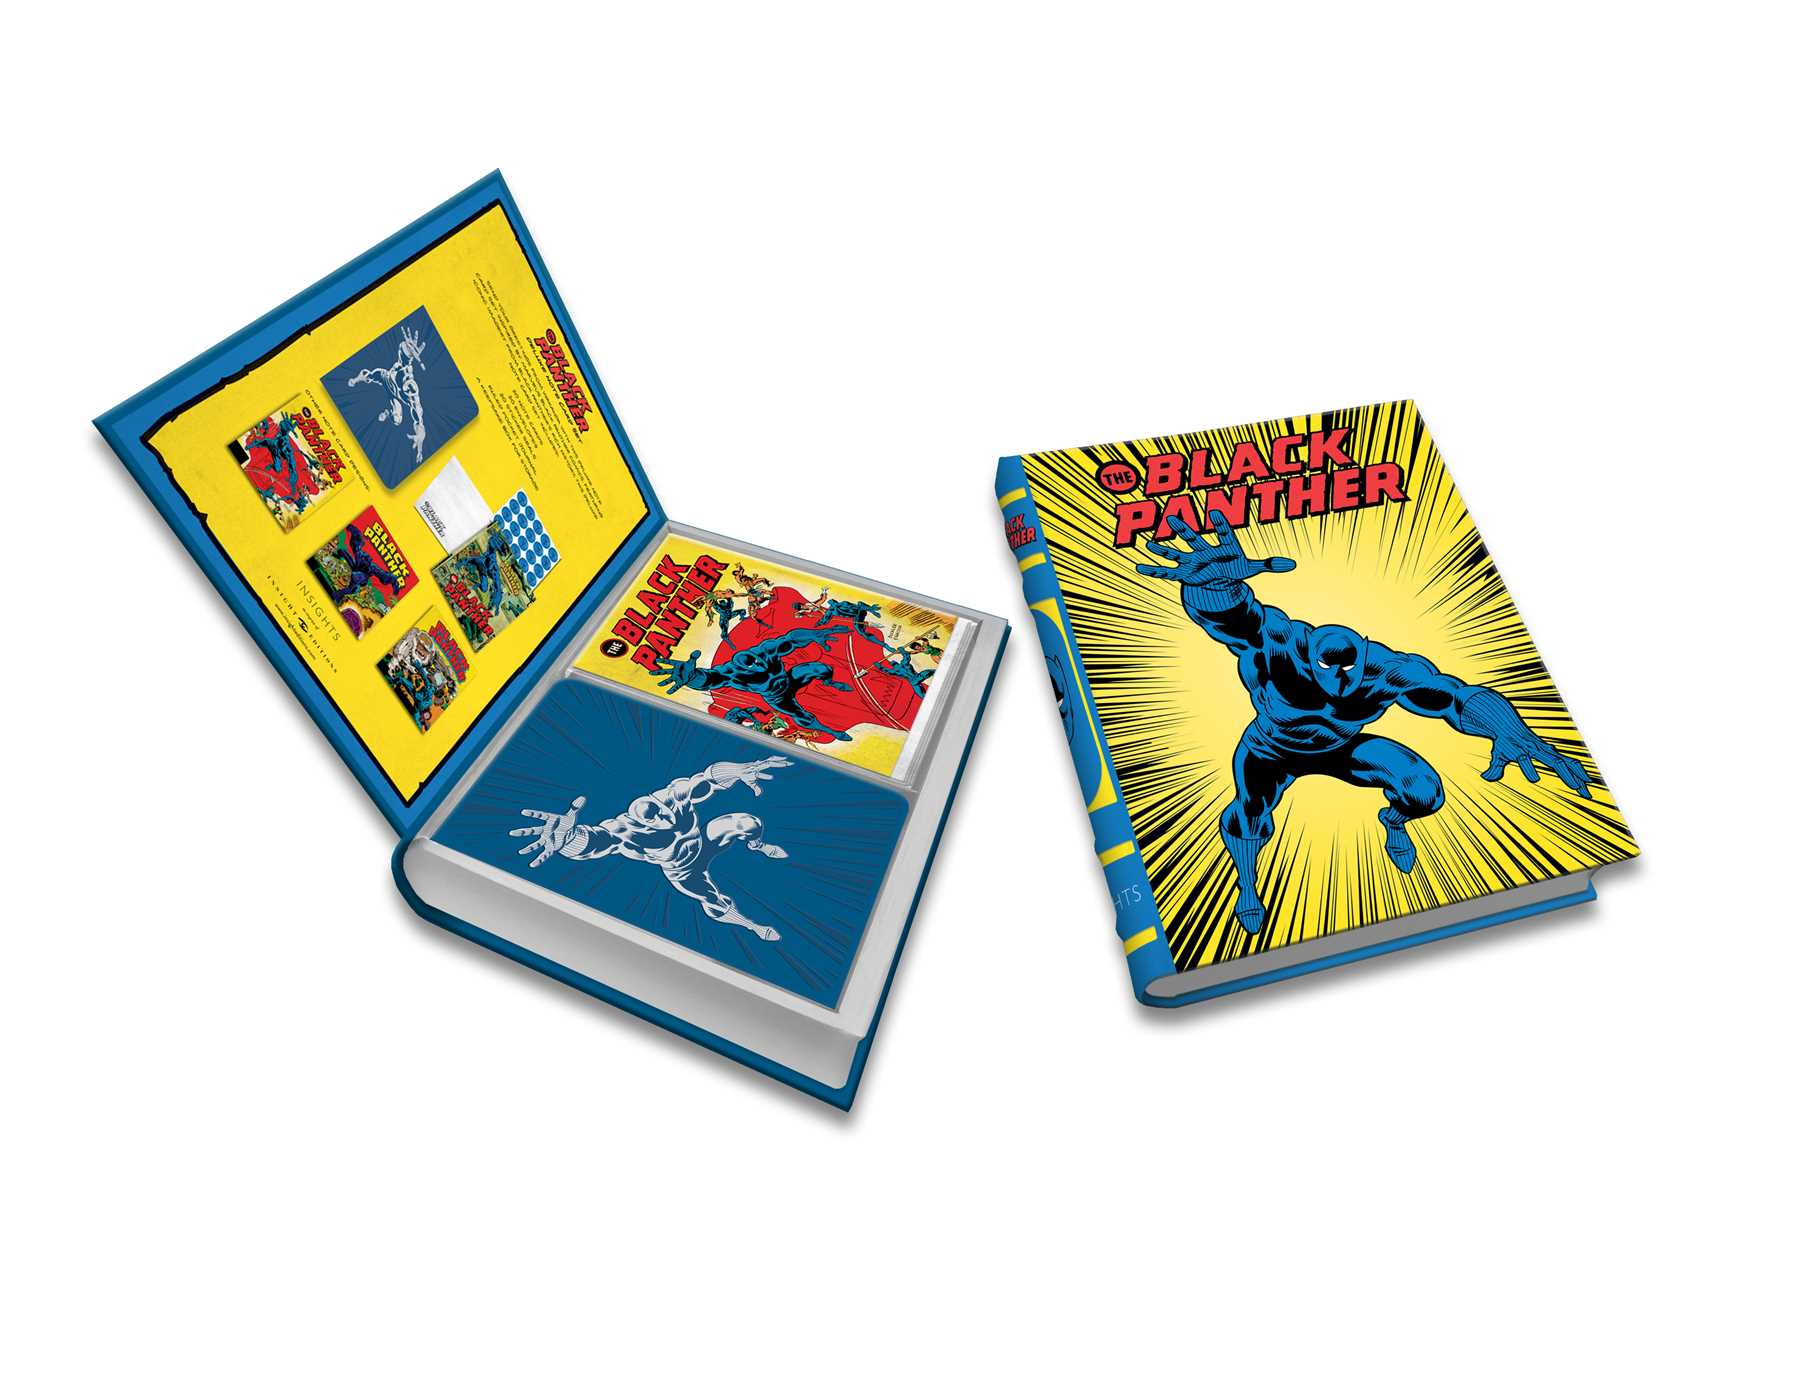 Marvel comics black panther deluxe note card set with keepsake book box 9781683833390 hr